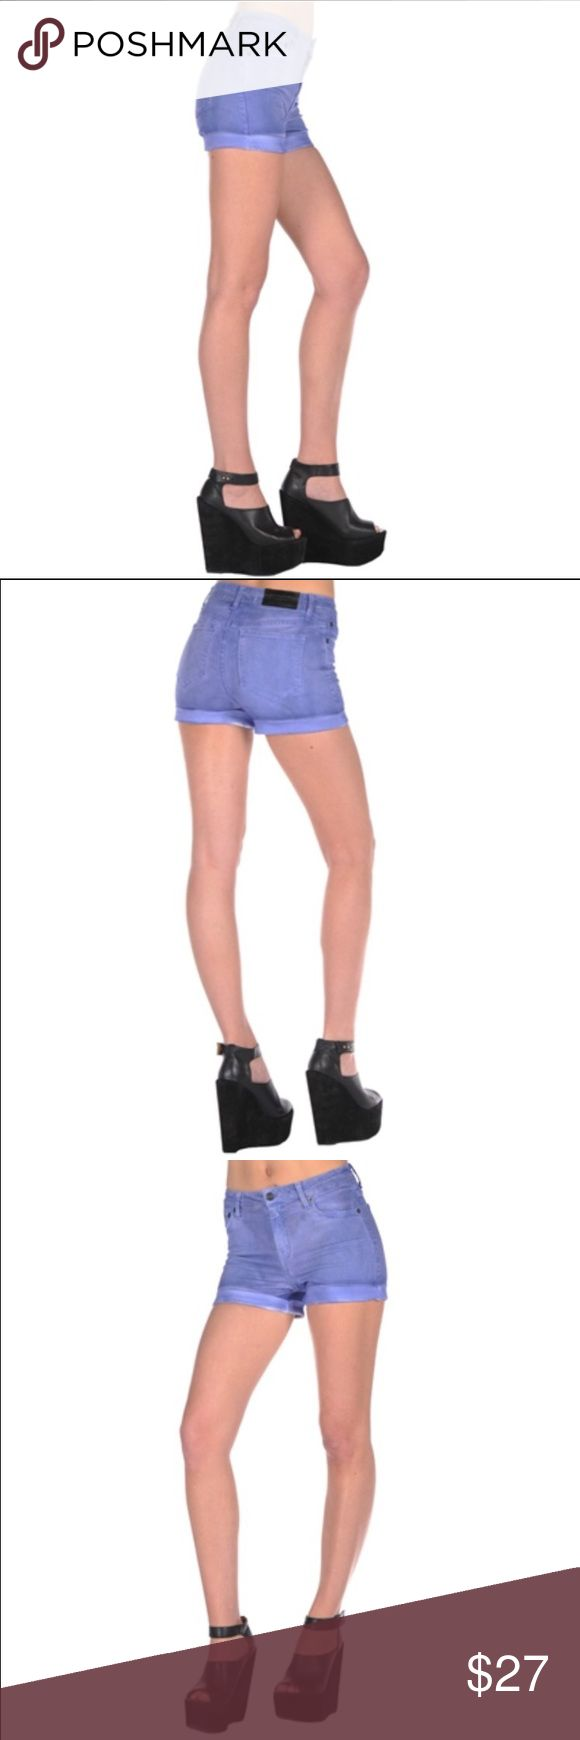 "💘KILL CITY HI WIRE SHORTS-STRETCH💘 💙The Hi Wire Shorts-Stretch Twill features a pigment spray, rolled hem, with a DIY 25 count stud kit.  In great condition. Super comfy.💙 Rise: 9"" Inseam: 3"" Color: Sky 98% Cotton, 2% Spandex. Made by KILL CITY in USA 🇺🇸 Kill City Shorts Jean Shorts"